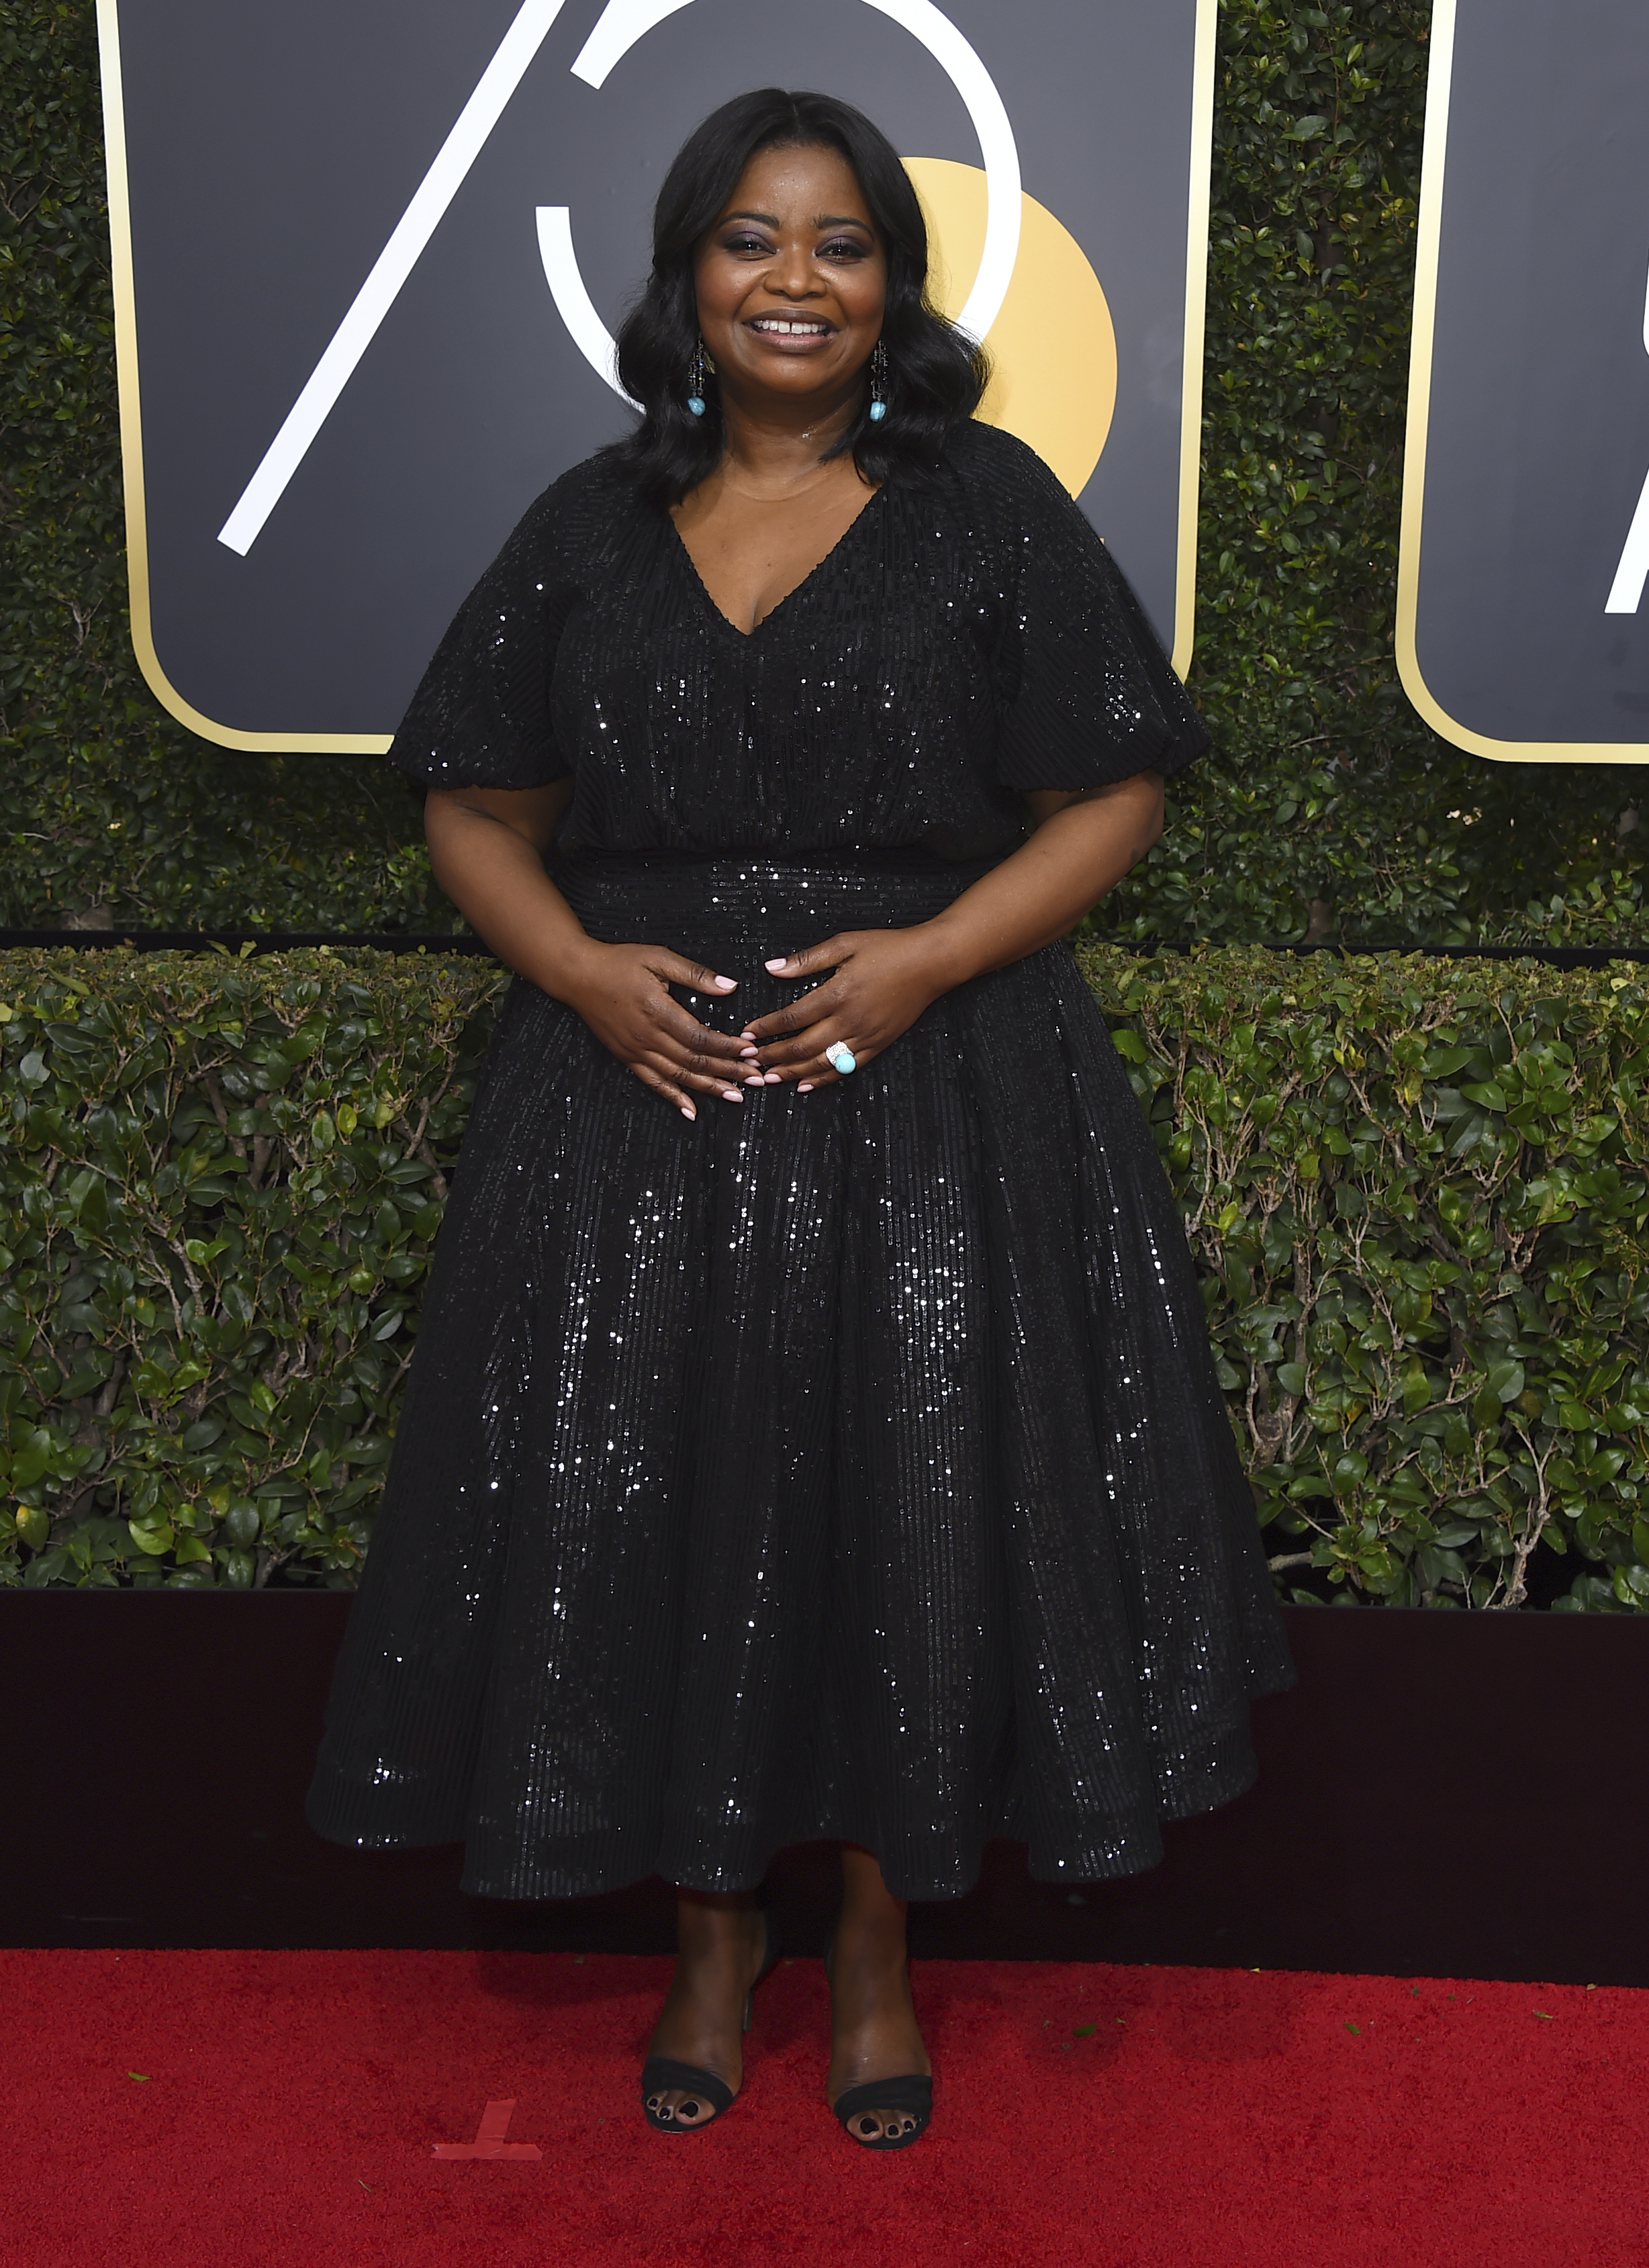 <div class='meta'><div class='origin-logo' data-origin='AP'></div><span class='caption-text' data-credit='Jordan Strauss/Invision/AP'>Octavia Spencer arrives at the 75th annual Golden Globe Awards at the Beverly Hilton Hotel on Sunday, Jan. 7, 2018, in Beverly Hills, Calif.</span></div>